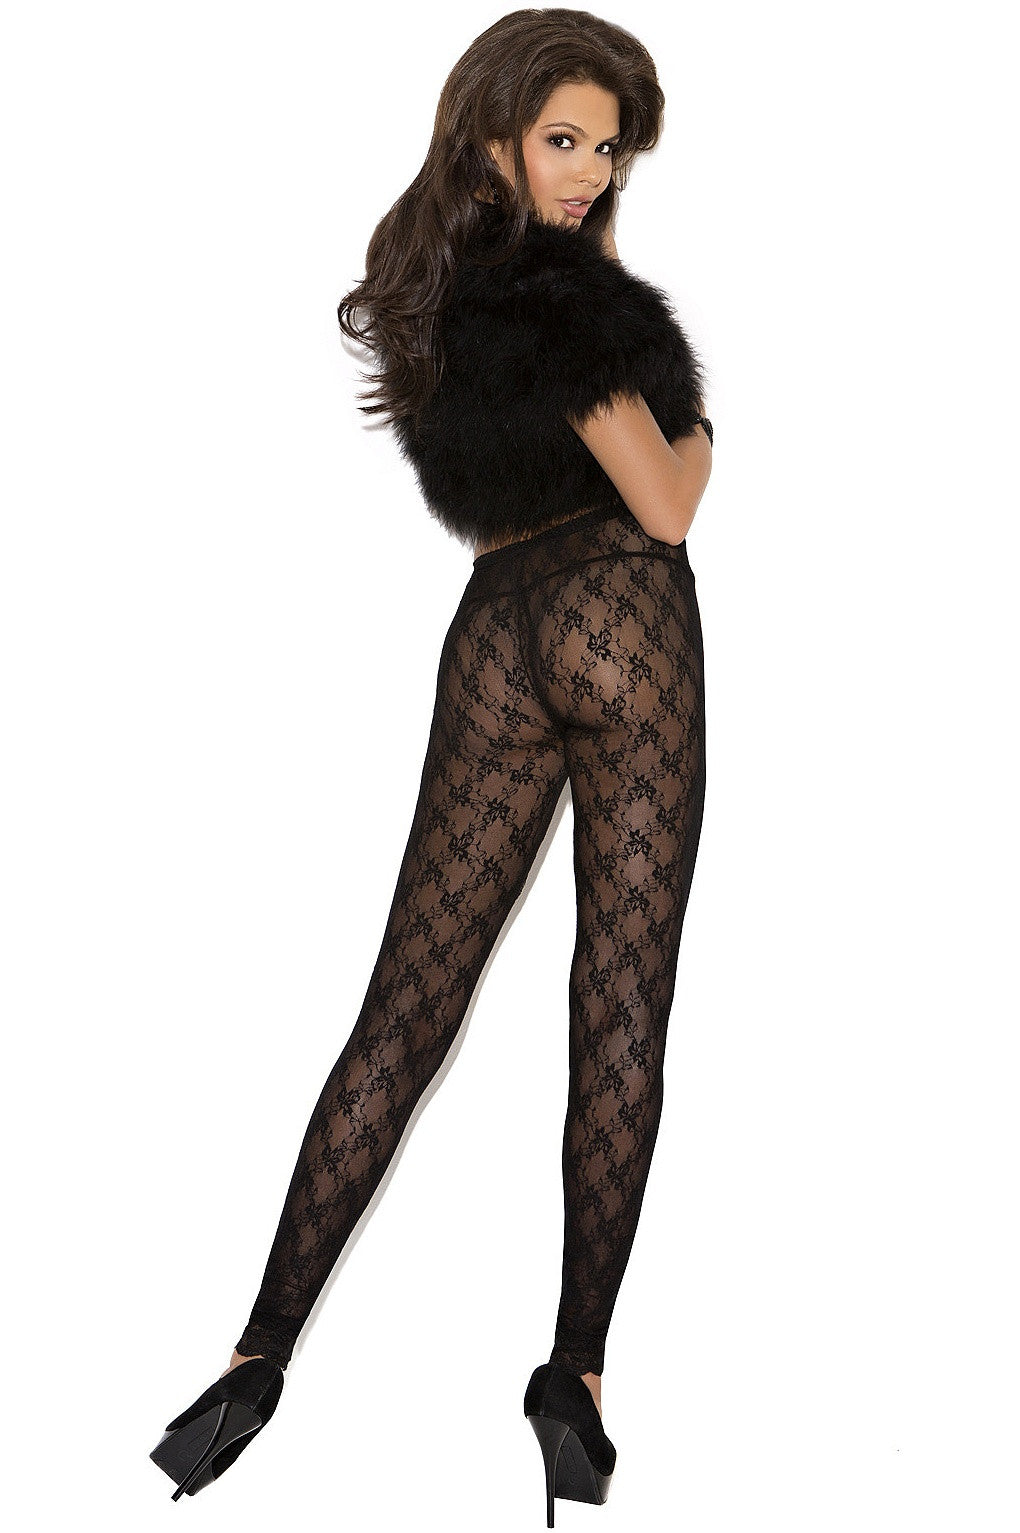 EM-1764 Black lace leggings - Sexylingerieland